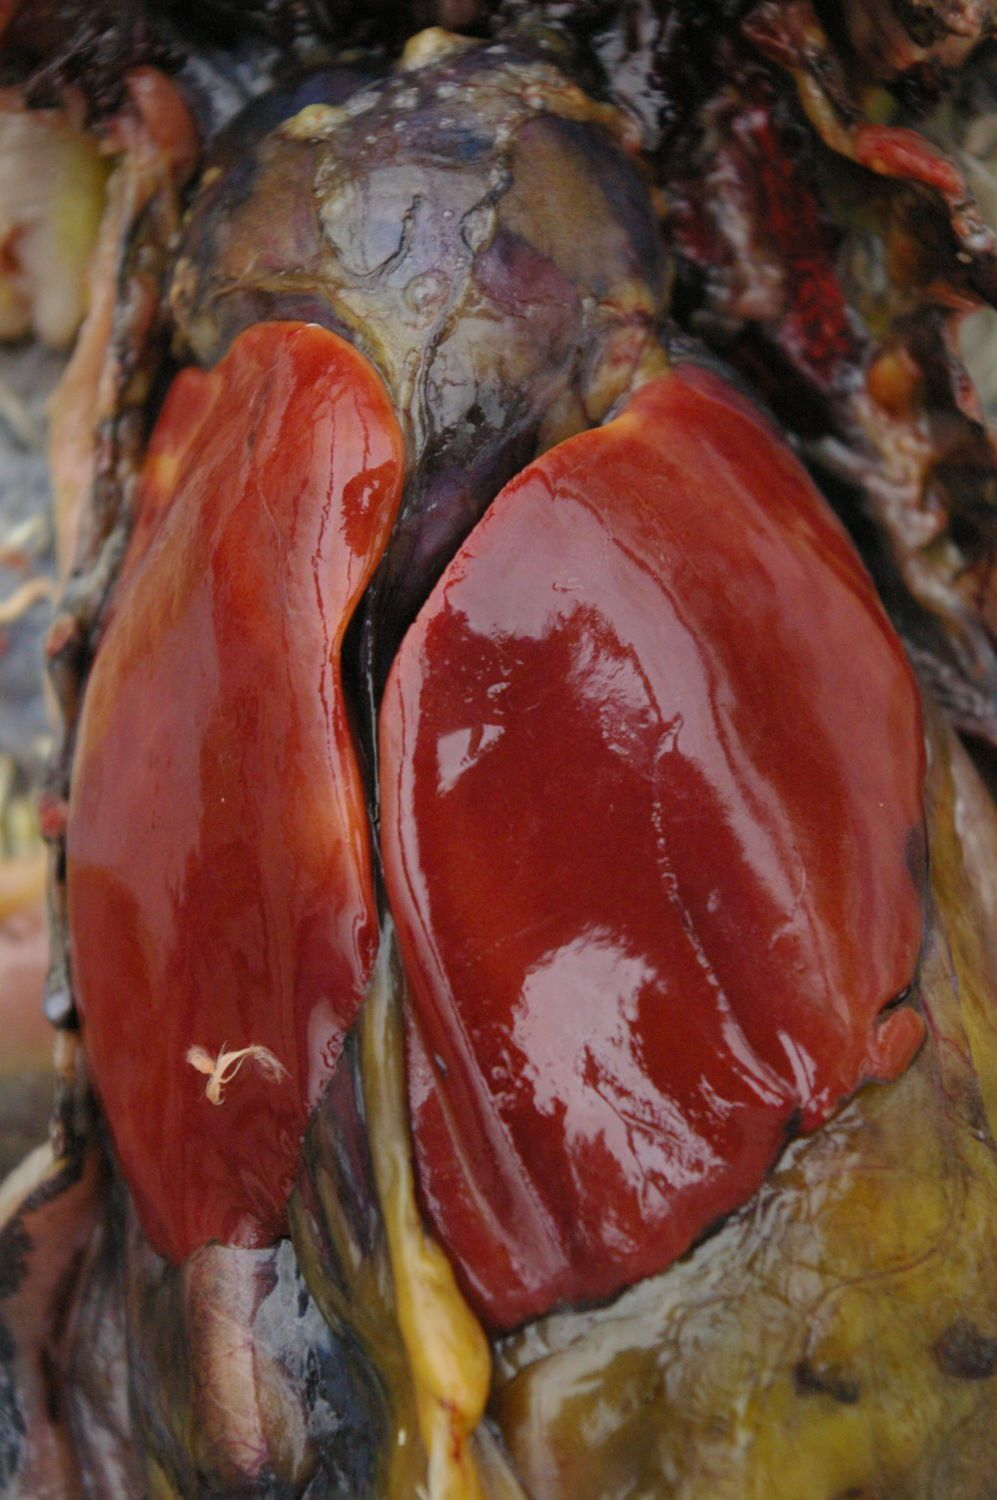 Heart at top of picture. Liver sits on top of it. This liver is pale and has yellow areas on it - that's not normal.